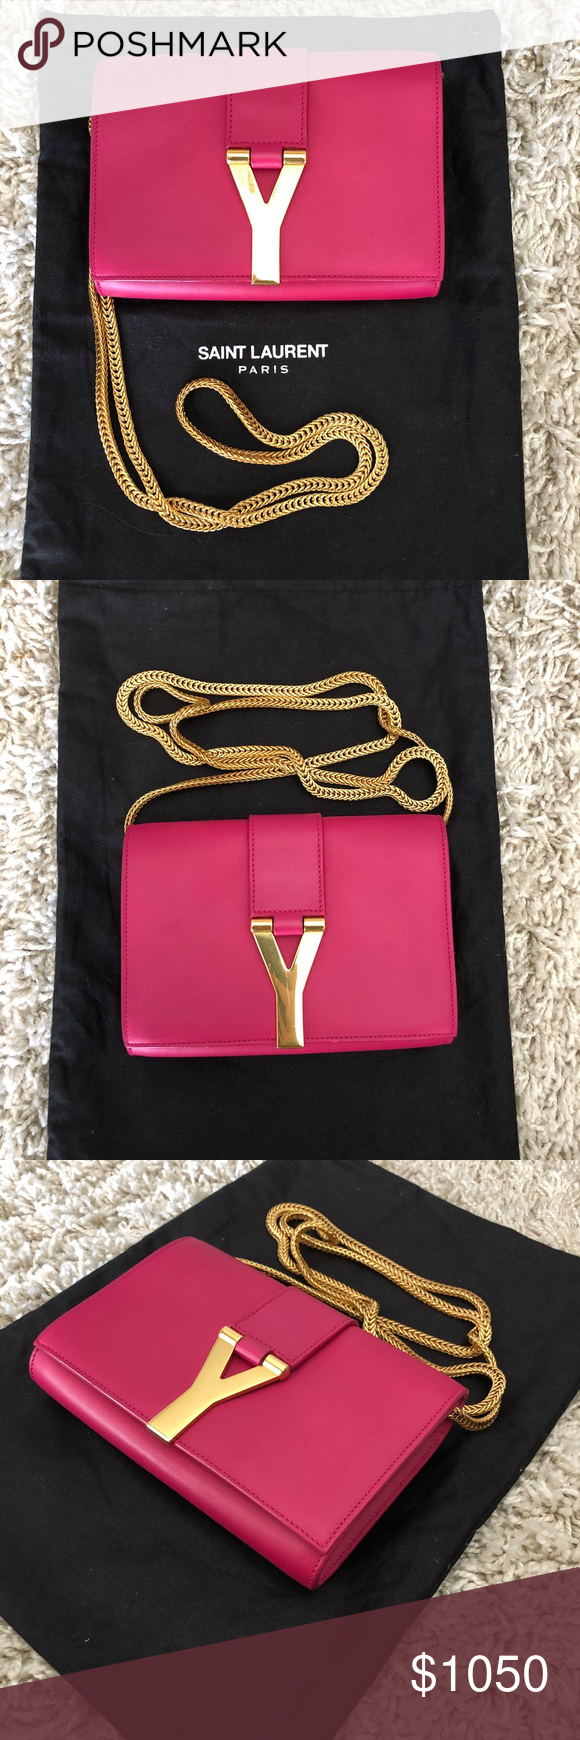 bd85cb6b68 YSL Y Ligne Mini Pochette Crossbody Bag Overall Condition  Gently used  Exterior Condition  Gently